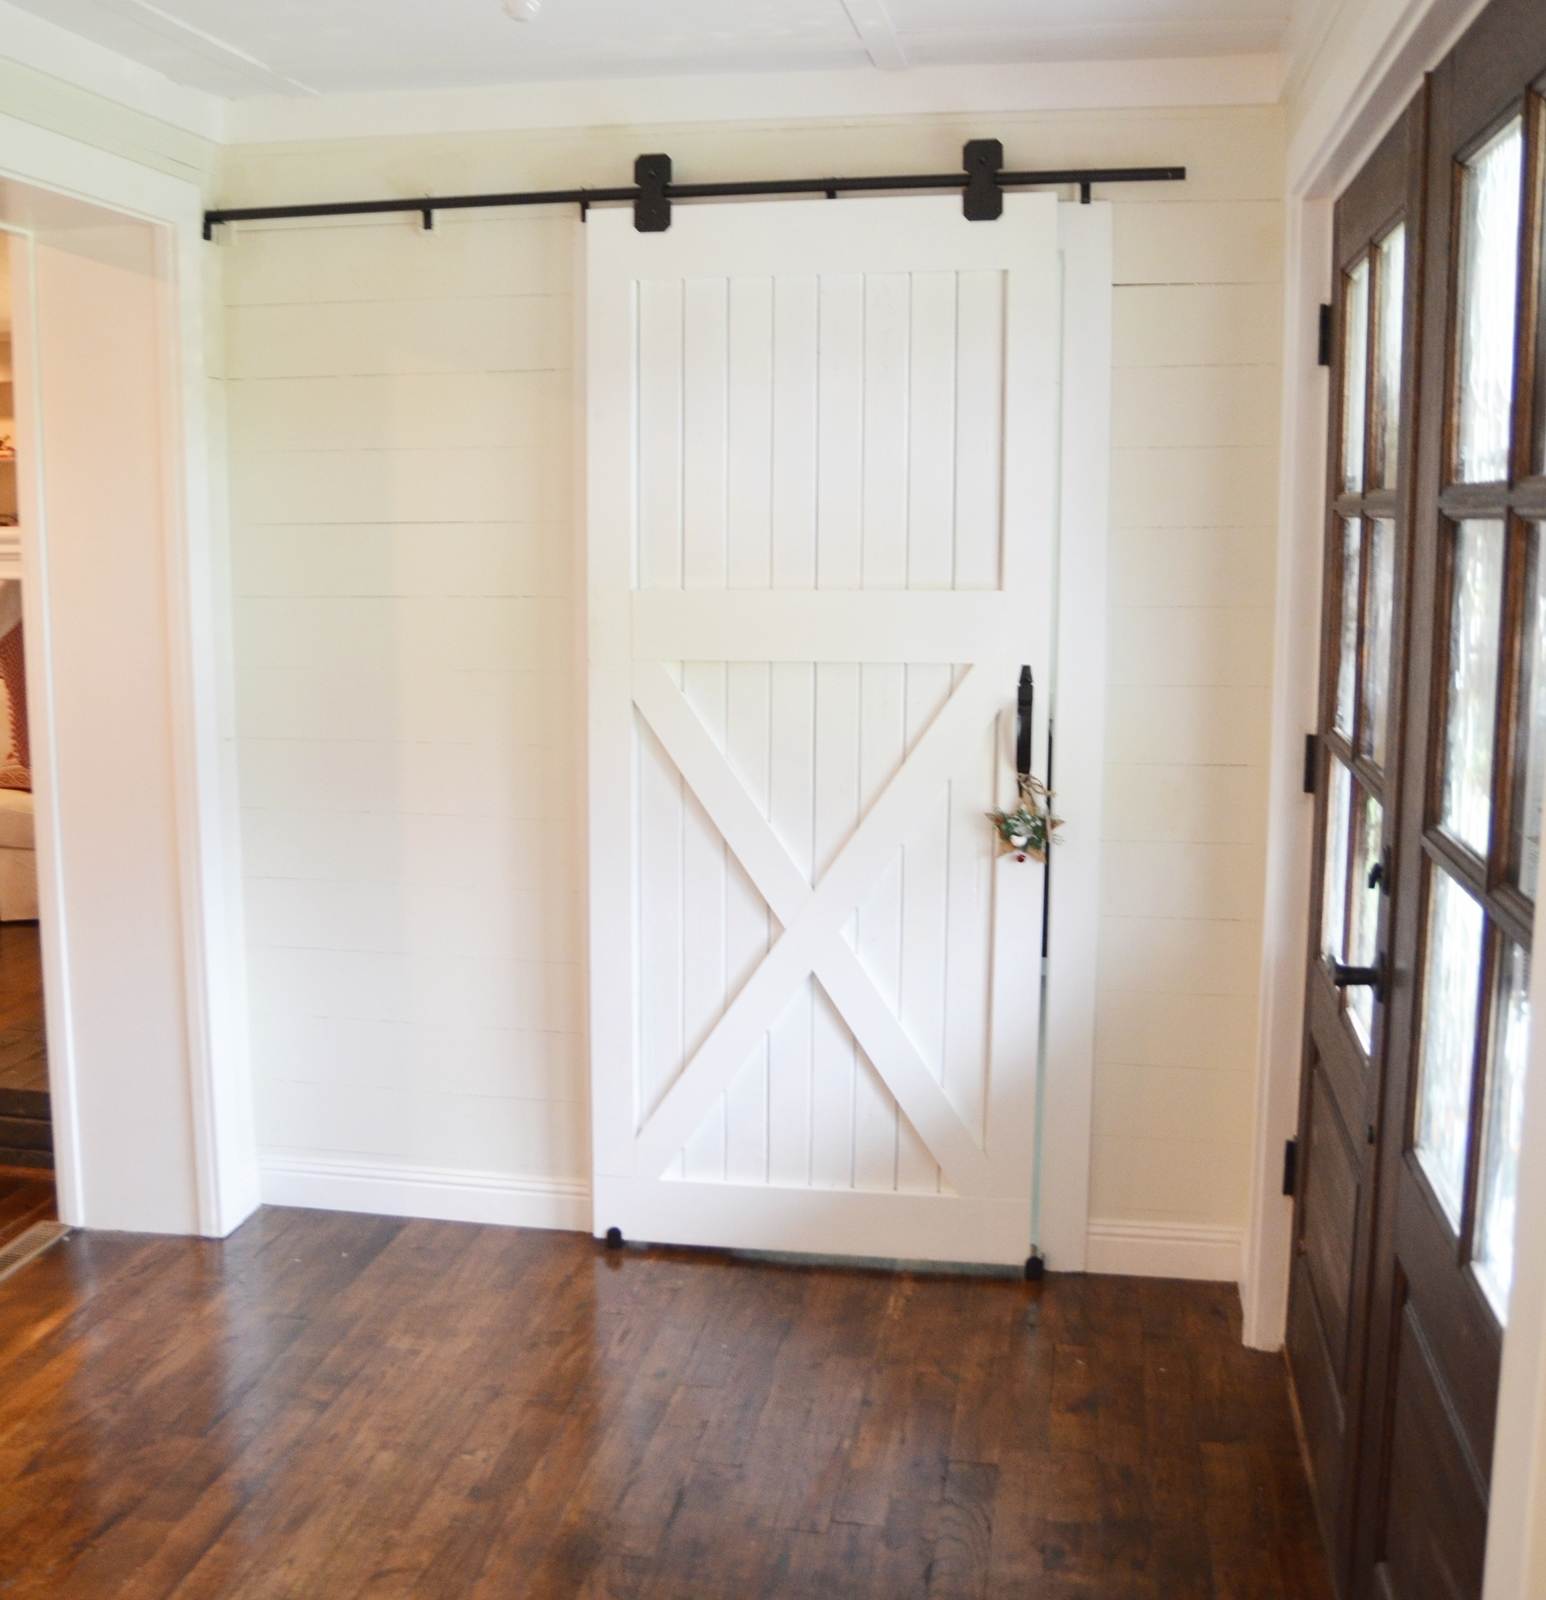 Diy barn door designs and tutorials from thrifty decor chick for Interior door construction